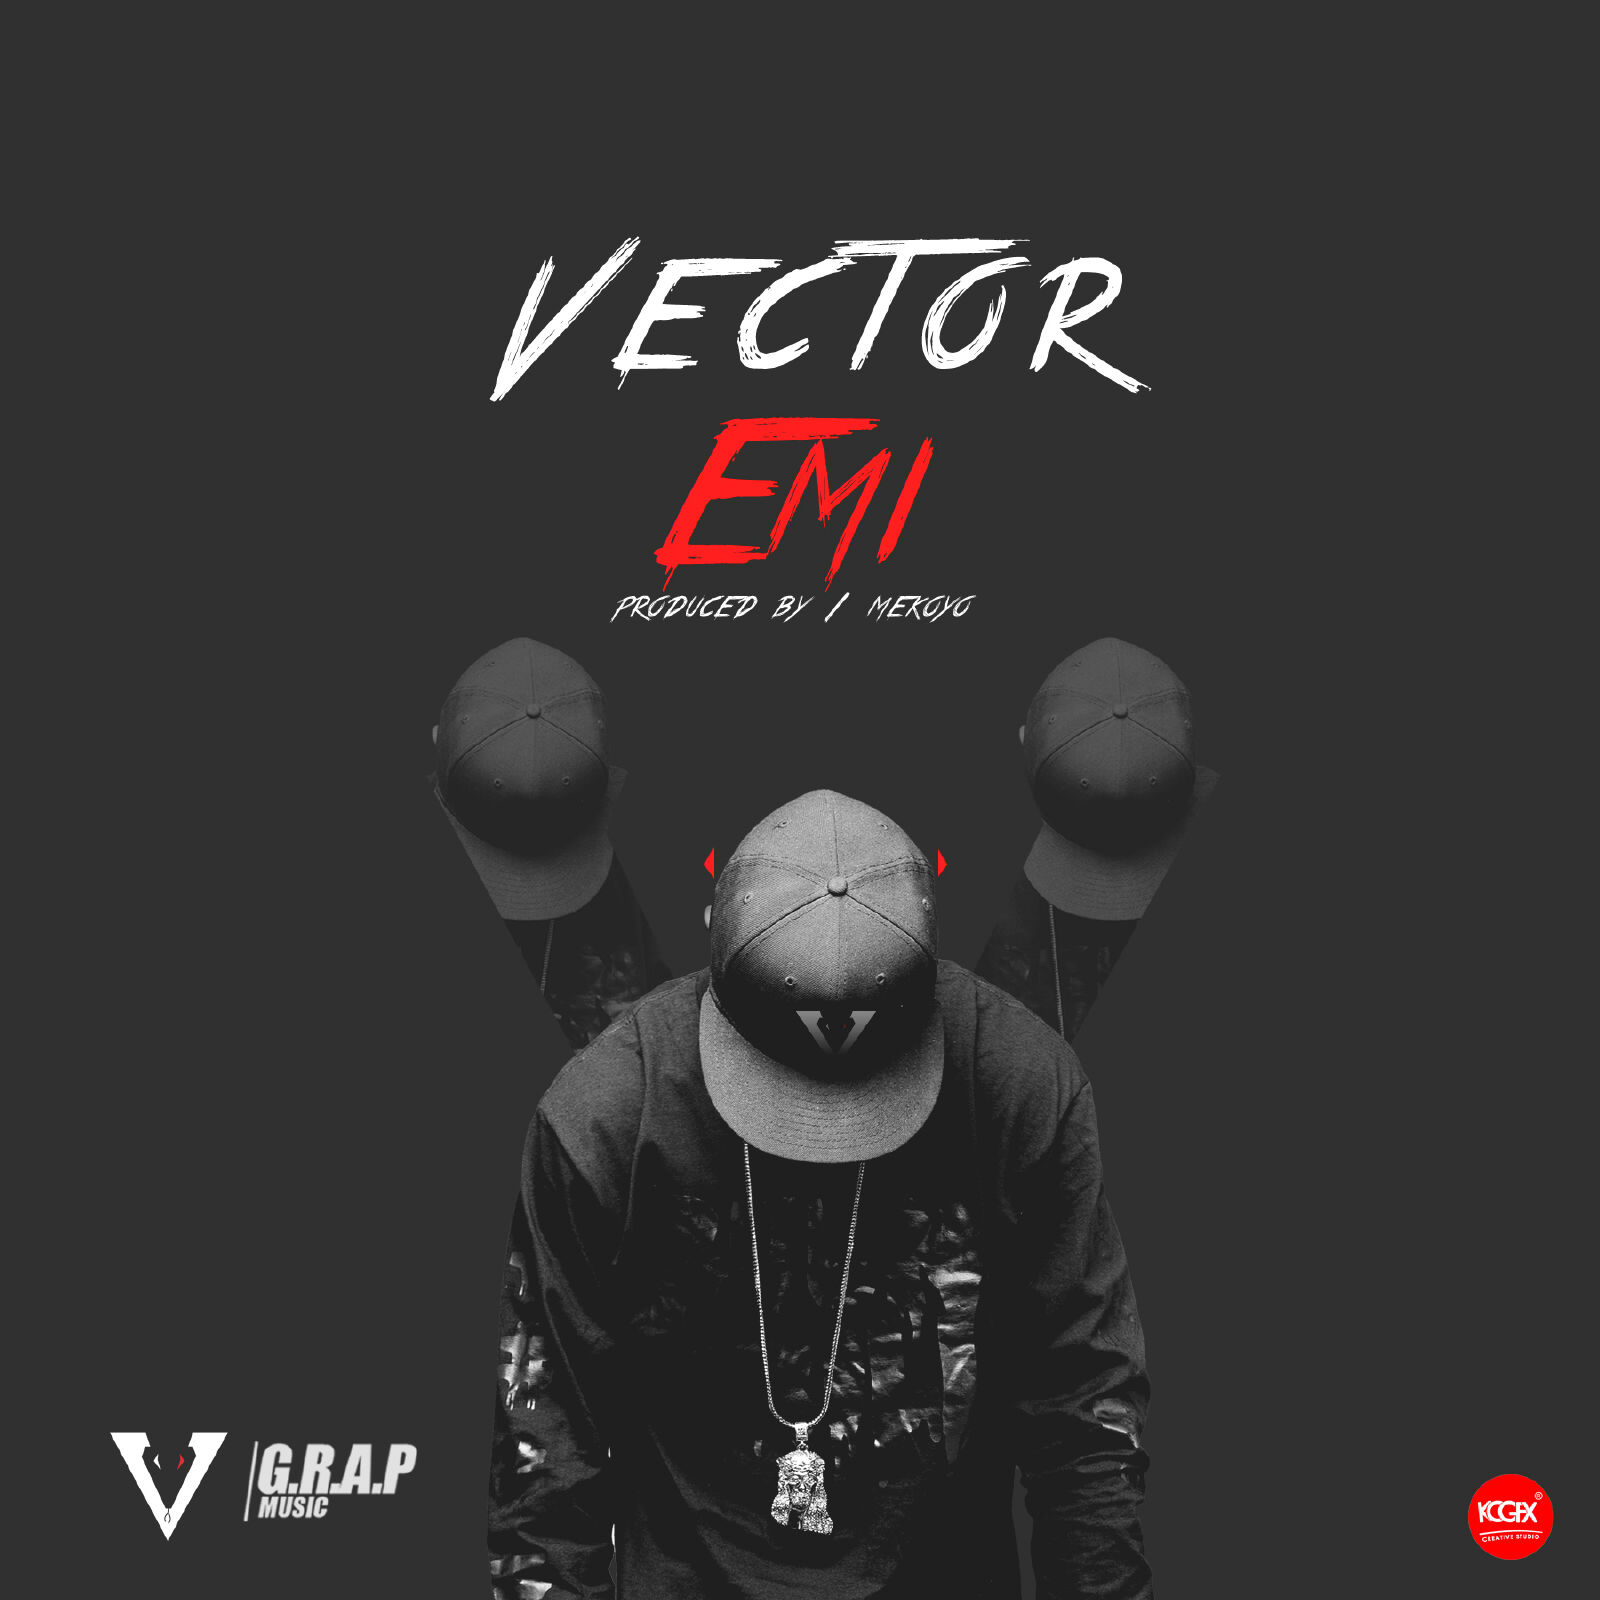 Vector - Emi (Prod. By Mekoyo)